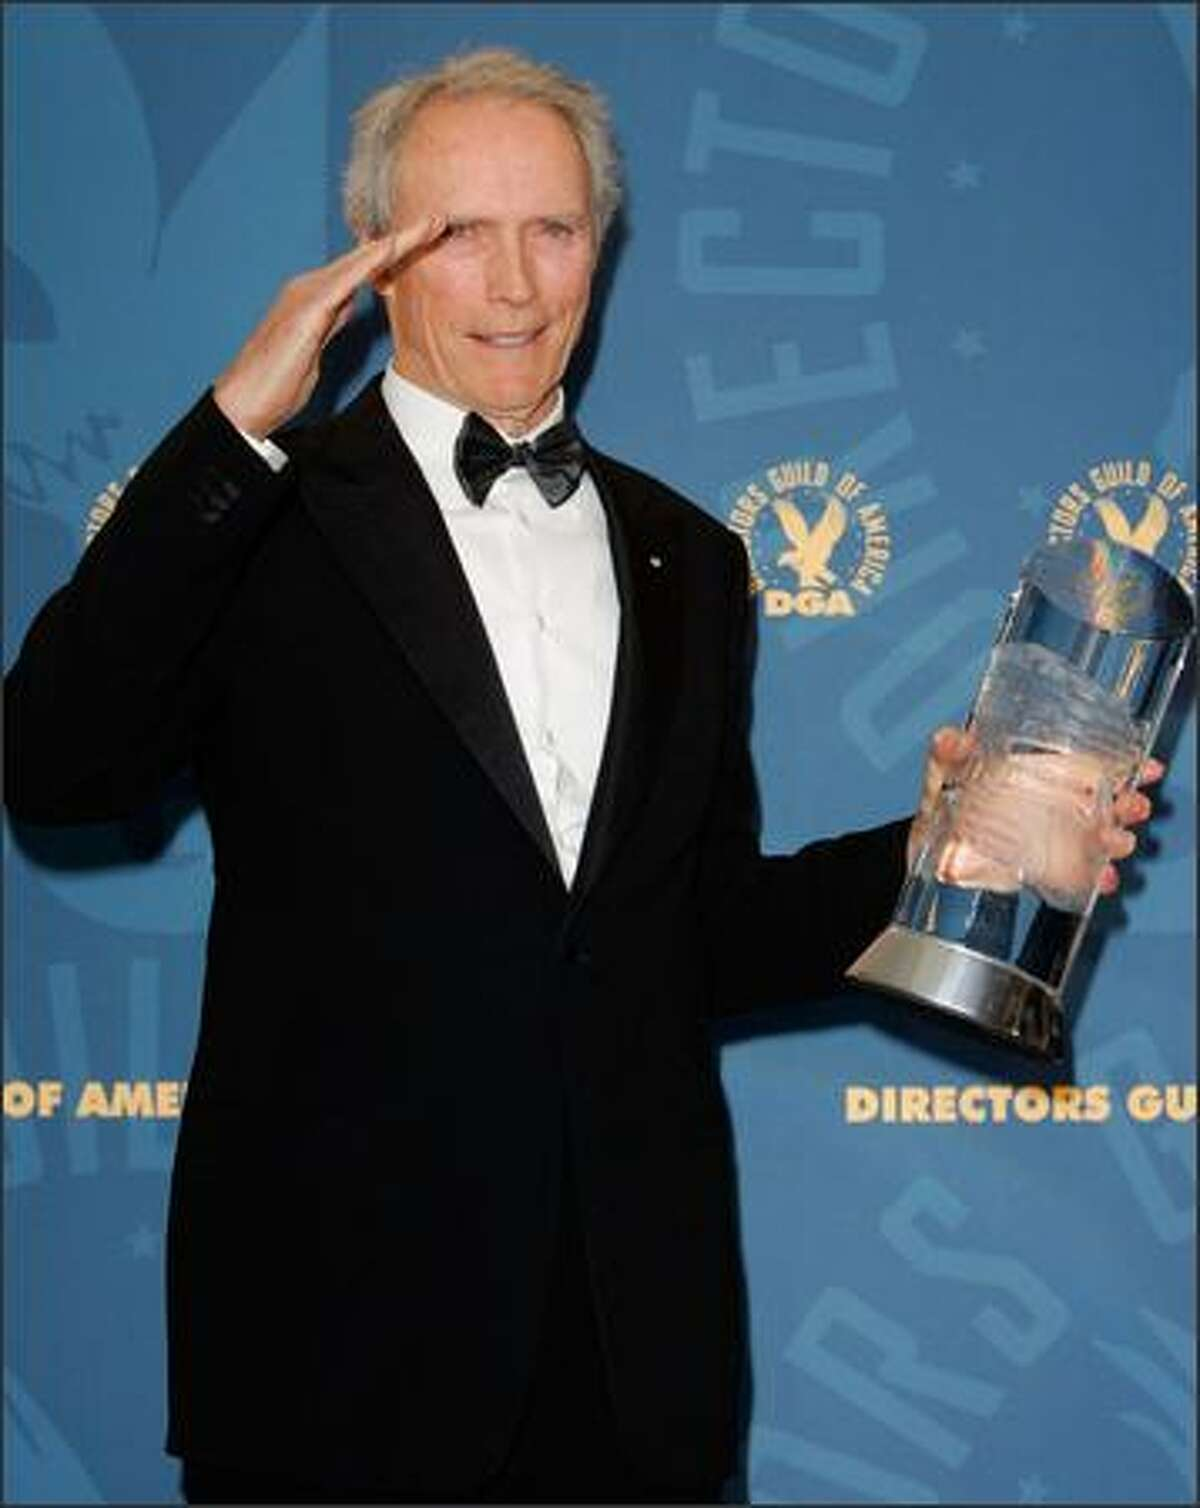 Clint Eastwood salutes backstage as he poses with the Directors Guild of America lifetime achievement award at the 58th Annual Directors Guild Awards in Los Angeles, on Saturday, Jan. 28, 2006. (AP Photo/Mark J. Terrill)